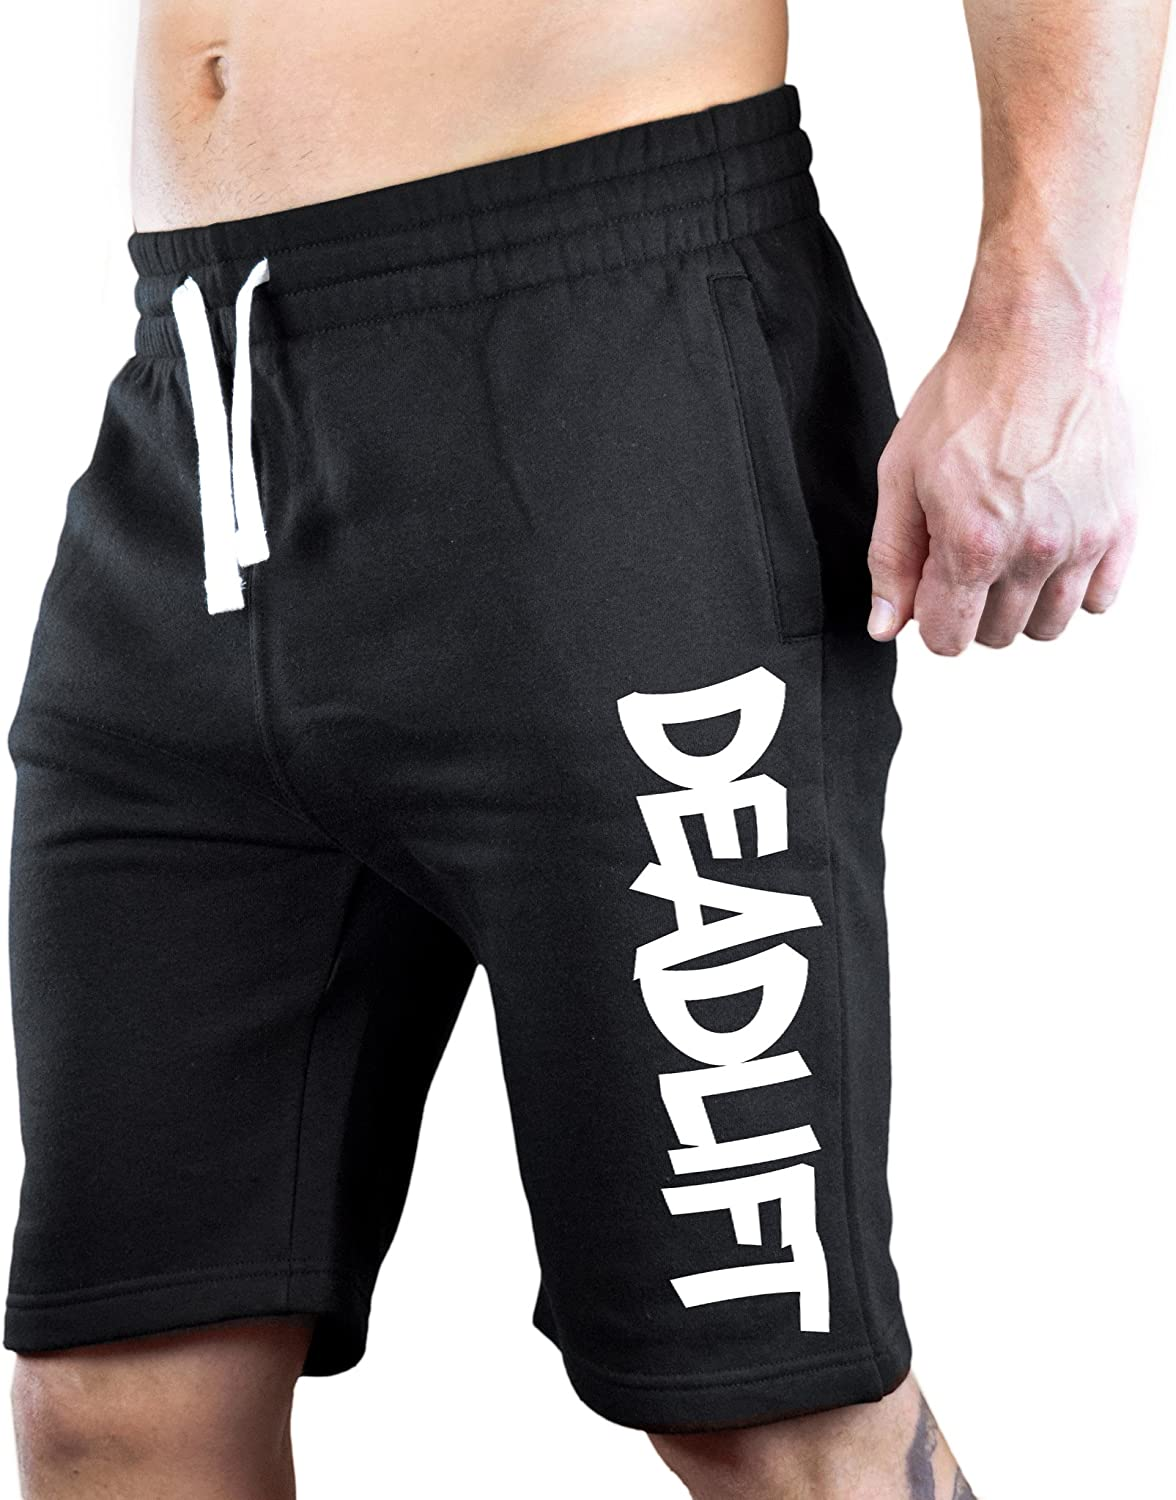 Interstate Apparel Mens Graffiti Deadlift V105 Black Fleece Jogger Sweatpant Gym Shorts